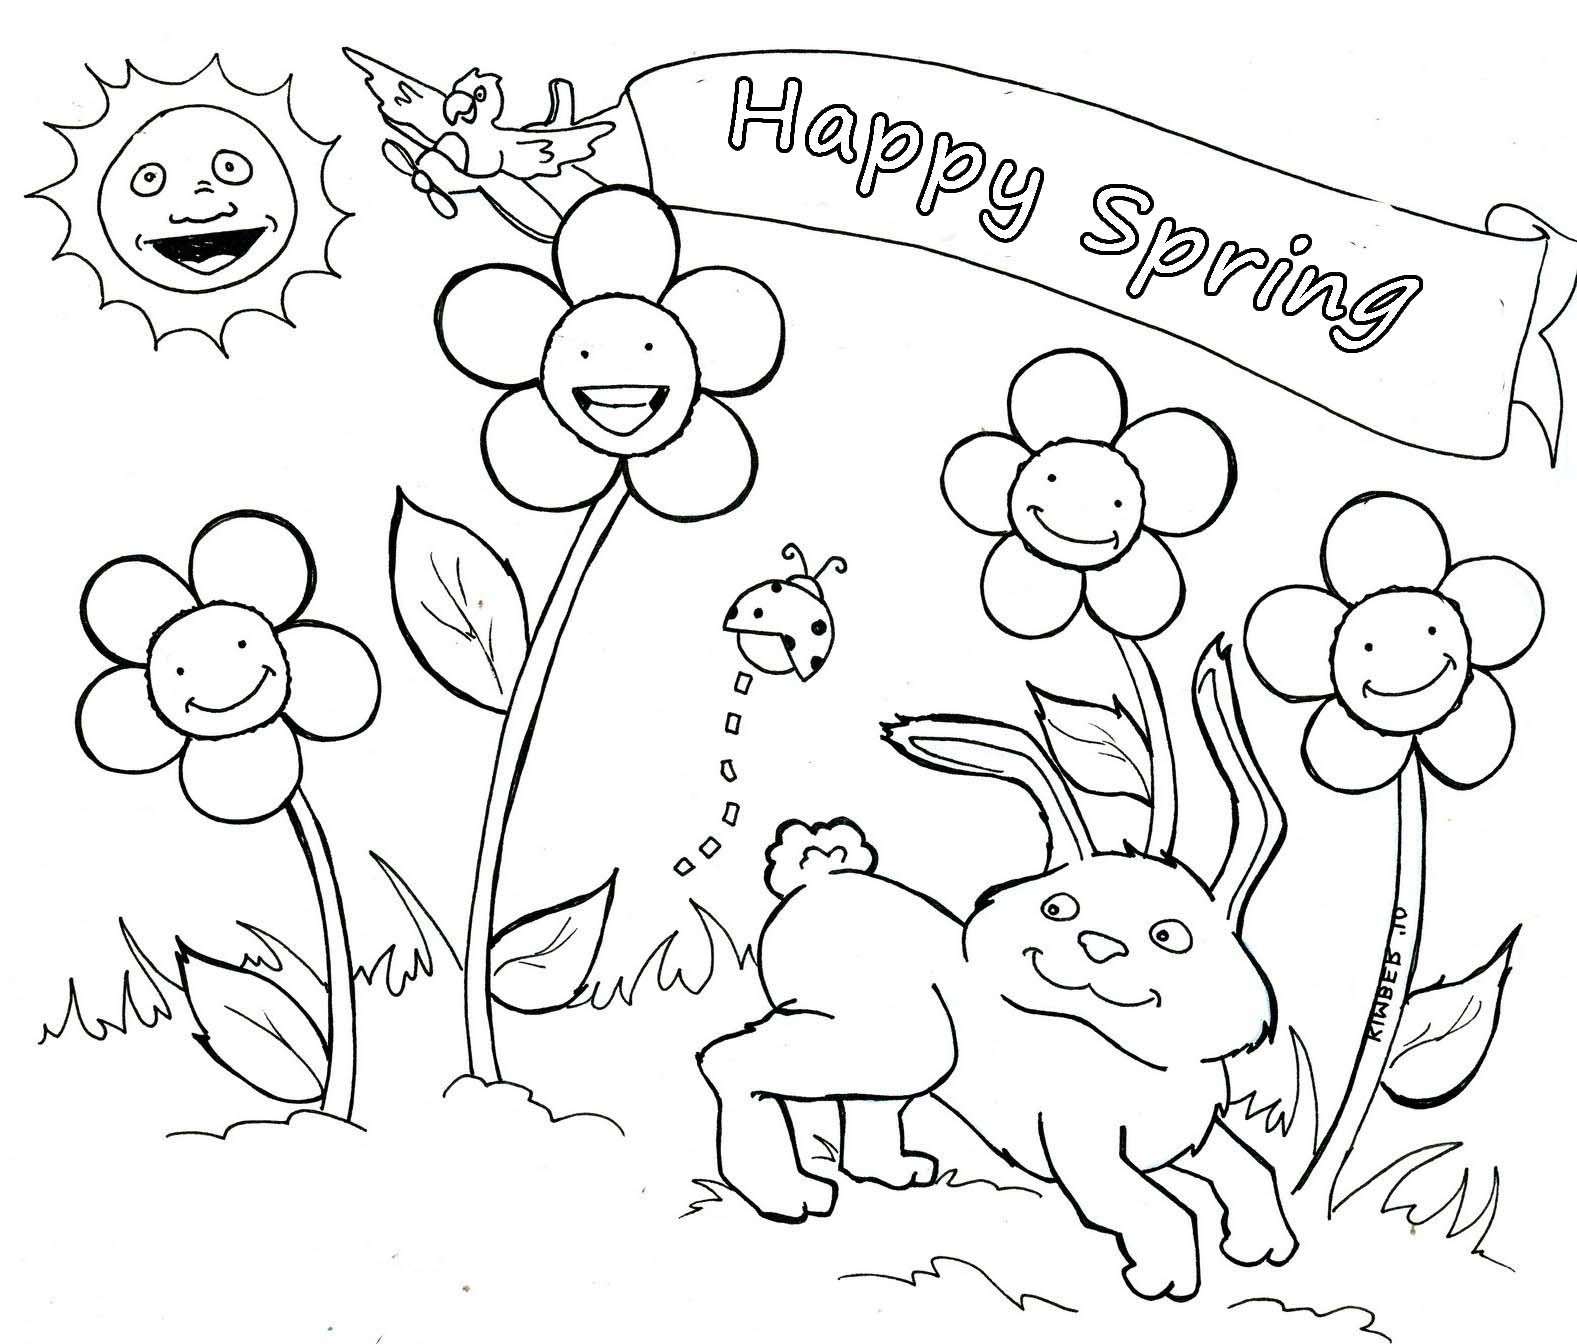 Happy Spring Coloring Pages Kids Turtle Coloring Pages Spring Coloring Sheets Birthday Coloring Pages